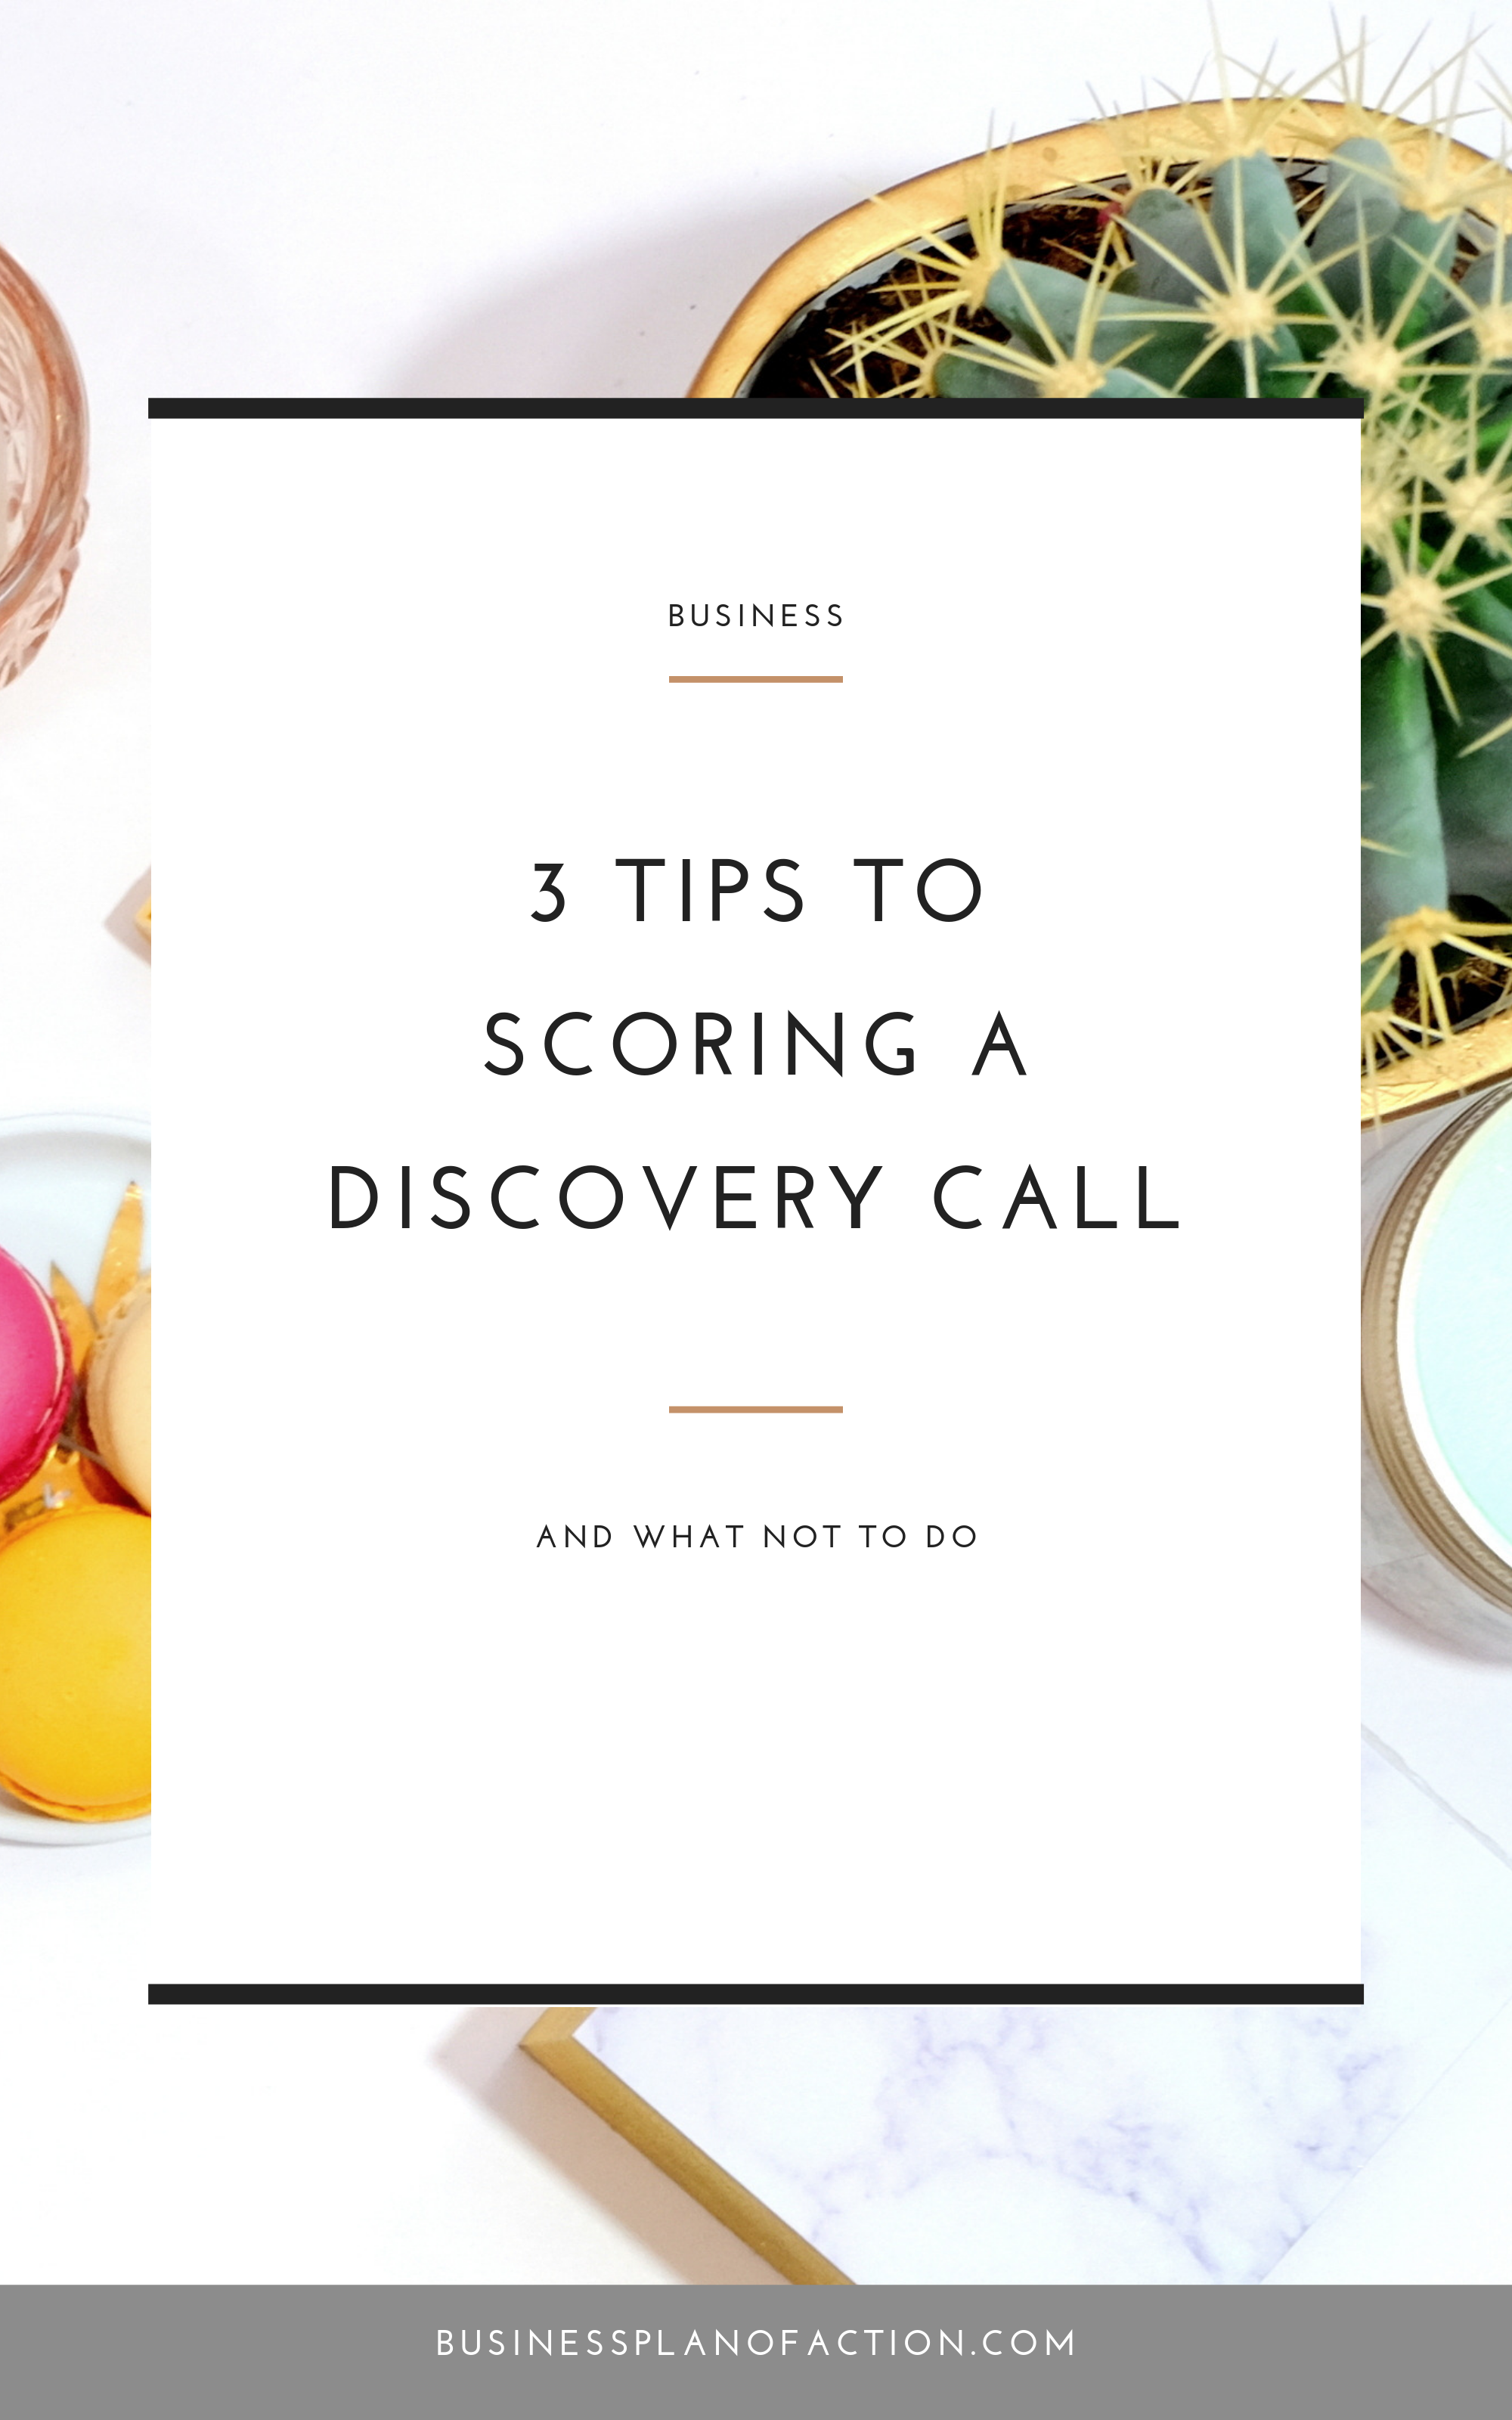 You need discovery calls if you're going to make sales. But how do you land discovery calls when you feel like you're not getting noticed. Read more to find out!